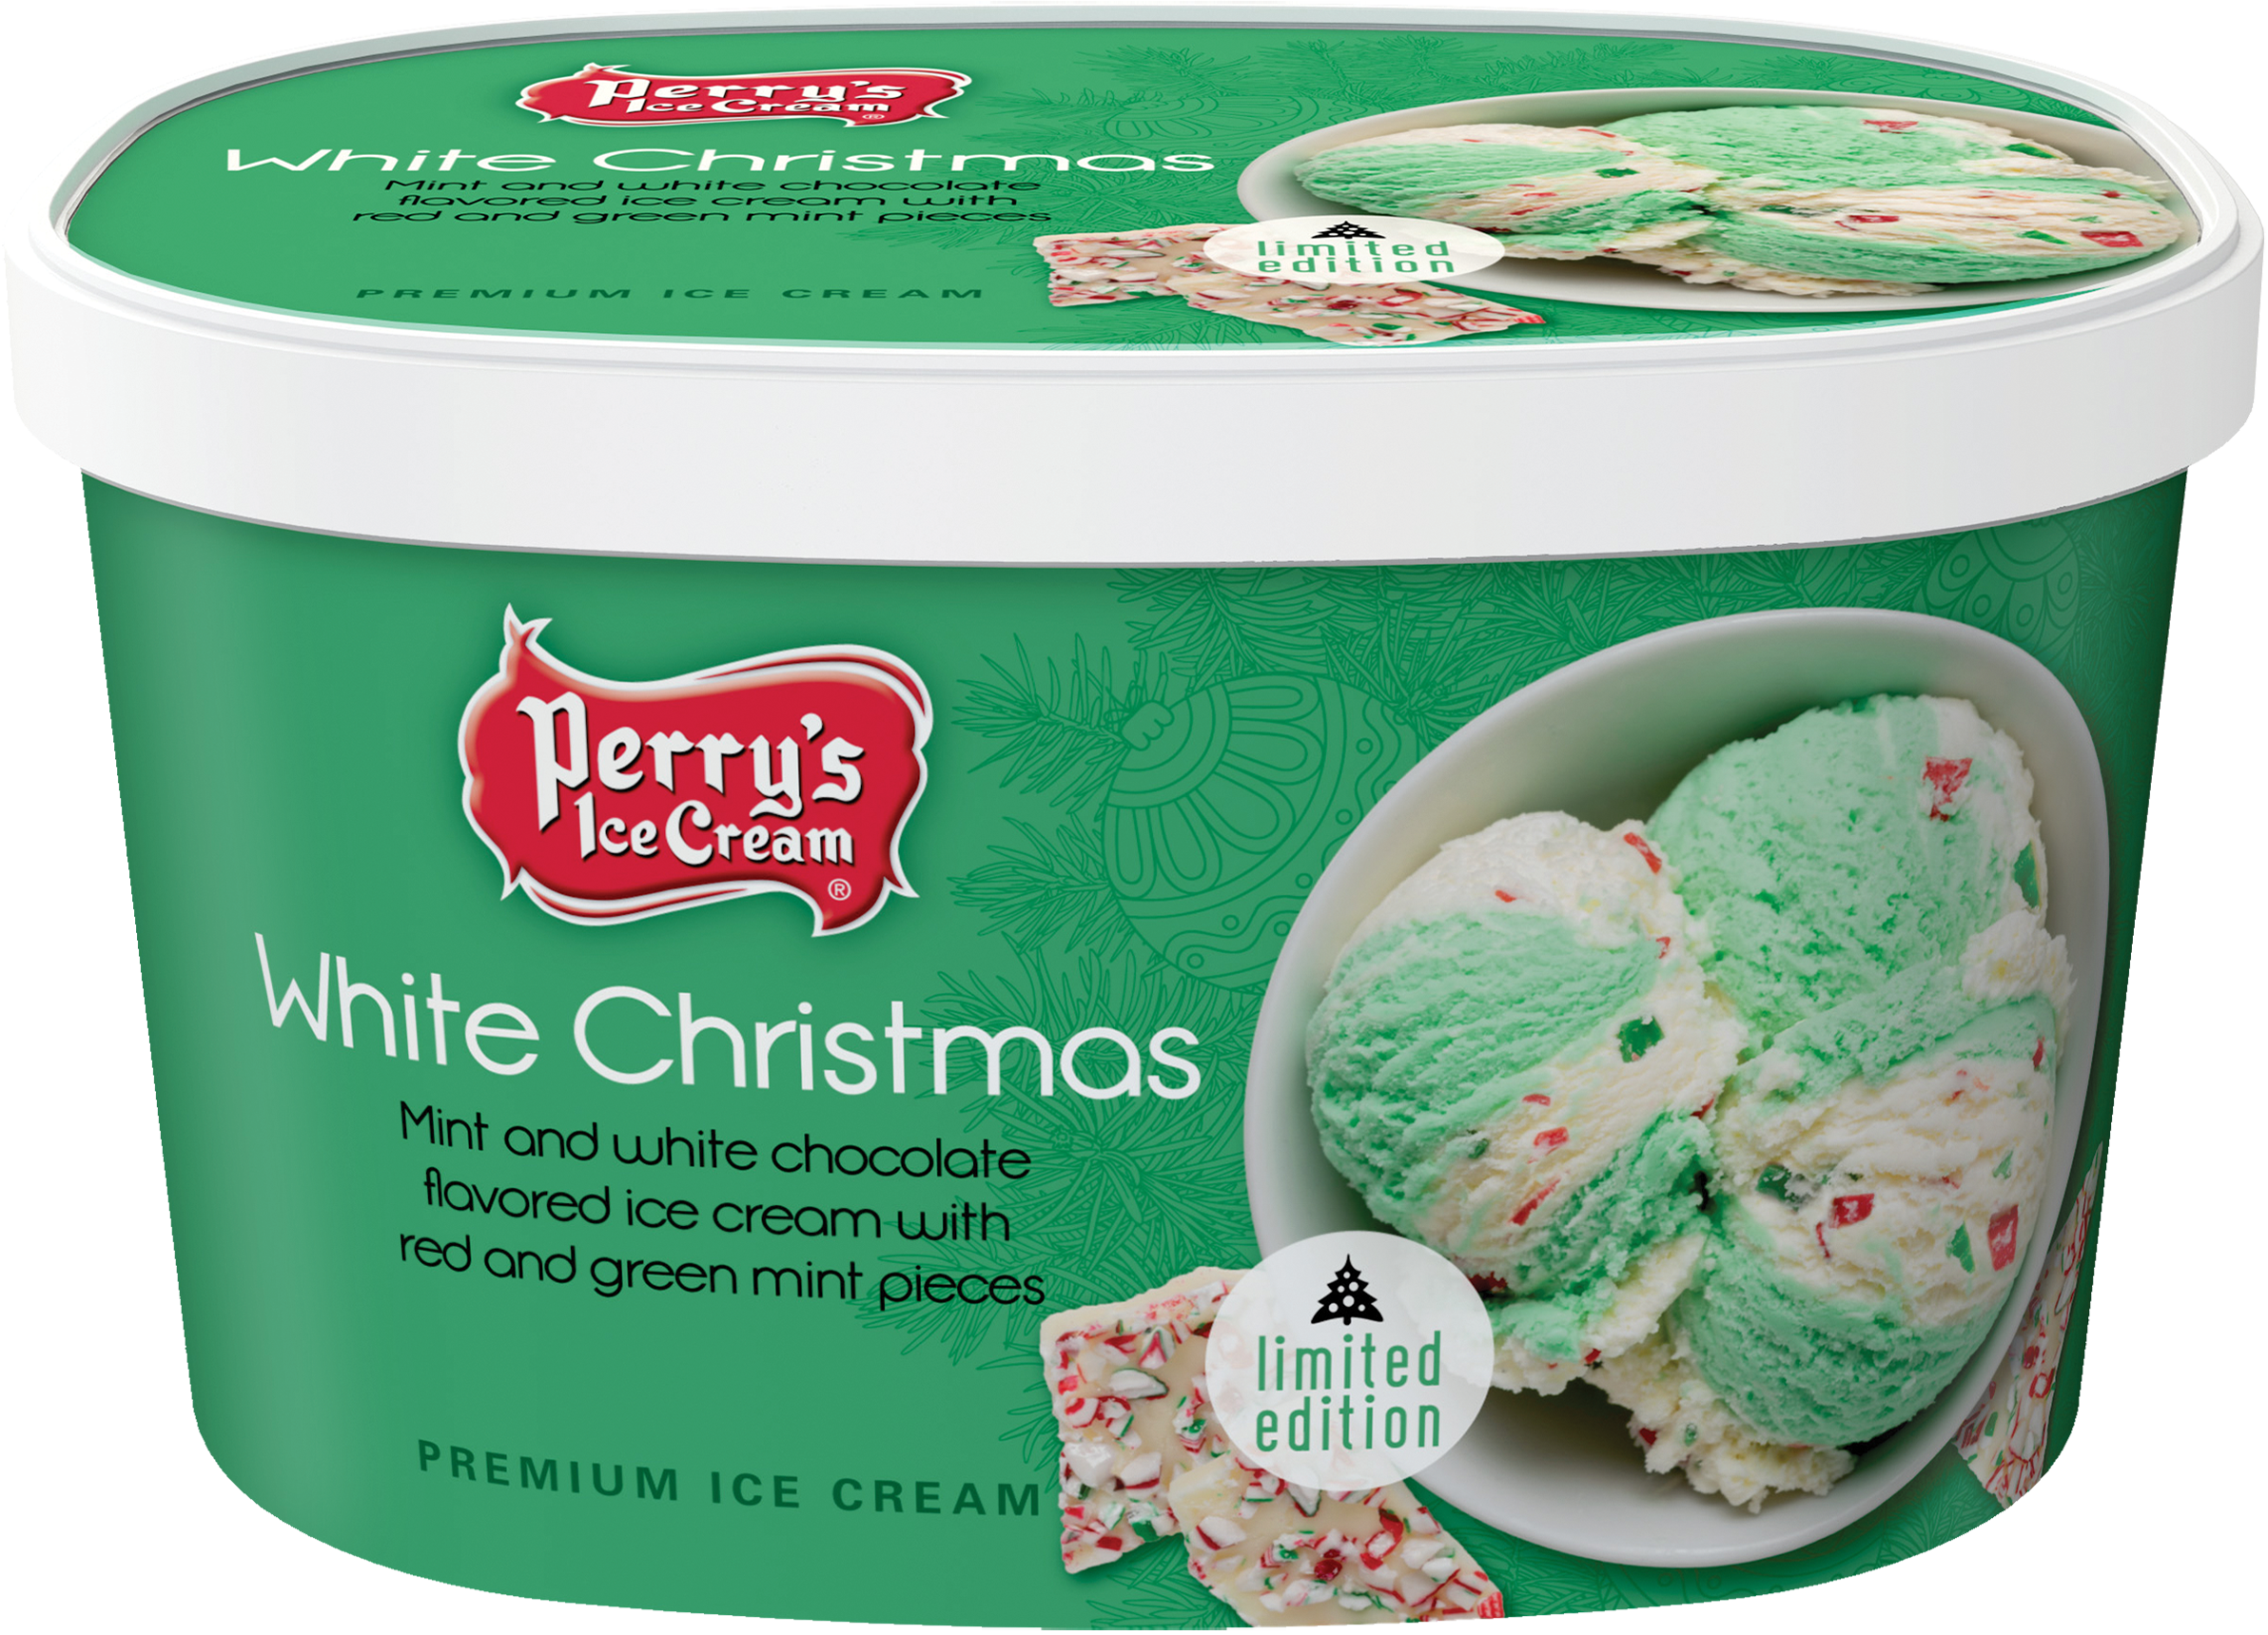 White Christmas - Perry's Ice CreamPerry's Ice Cream